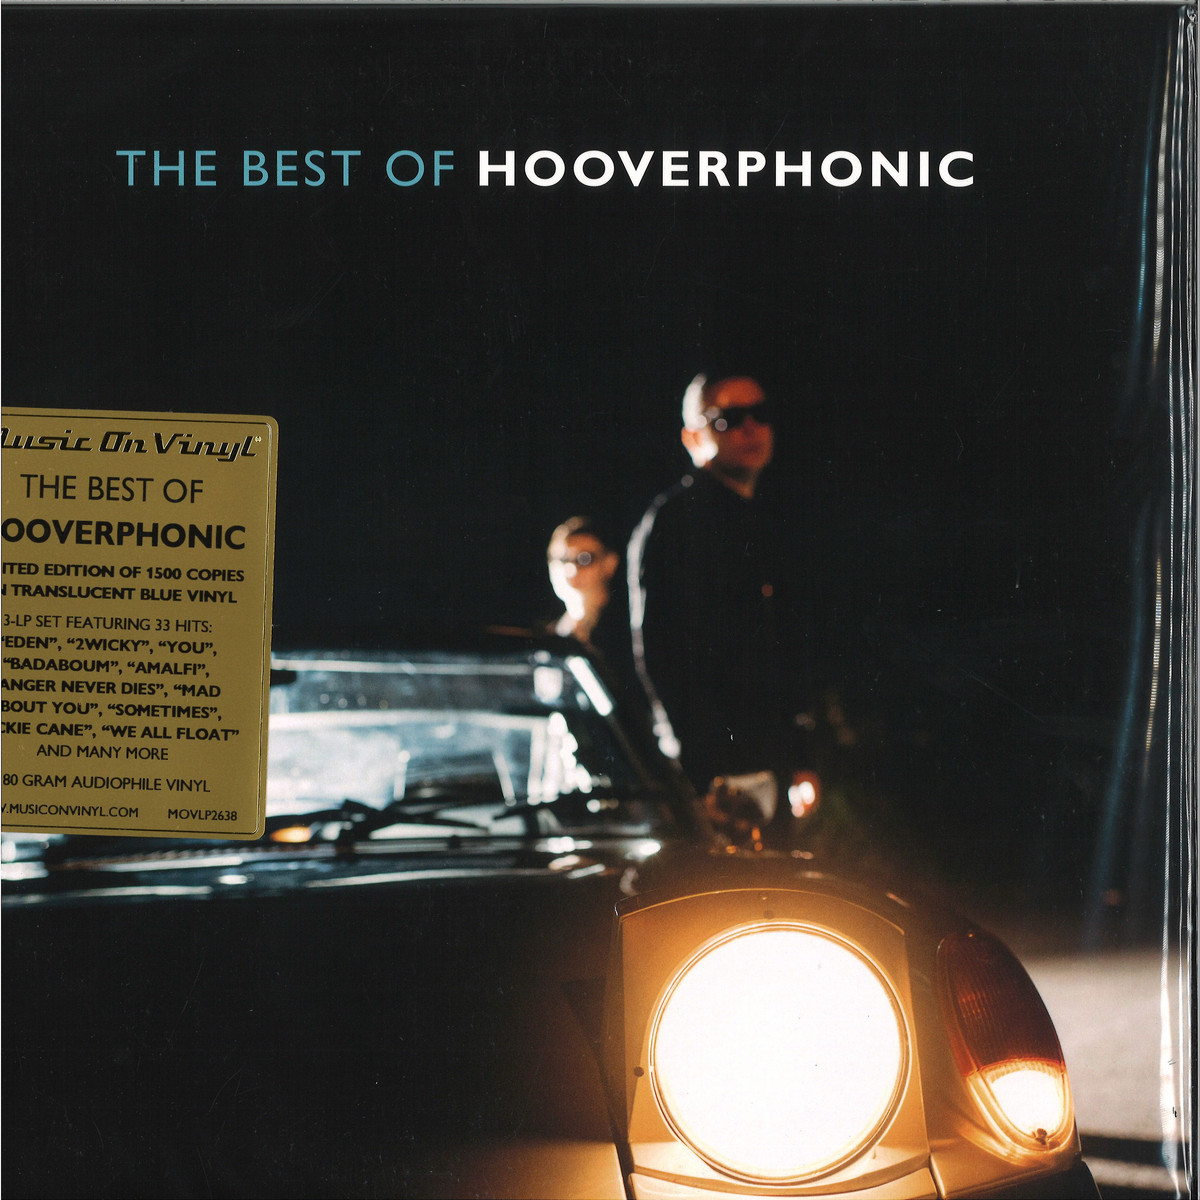 Hooverphonic - CD The Best of Hooverphonic